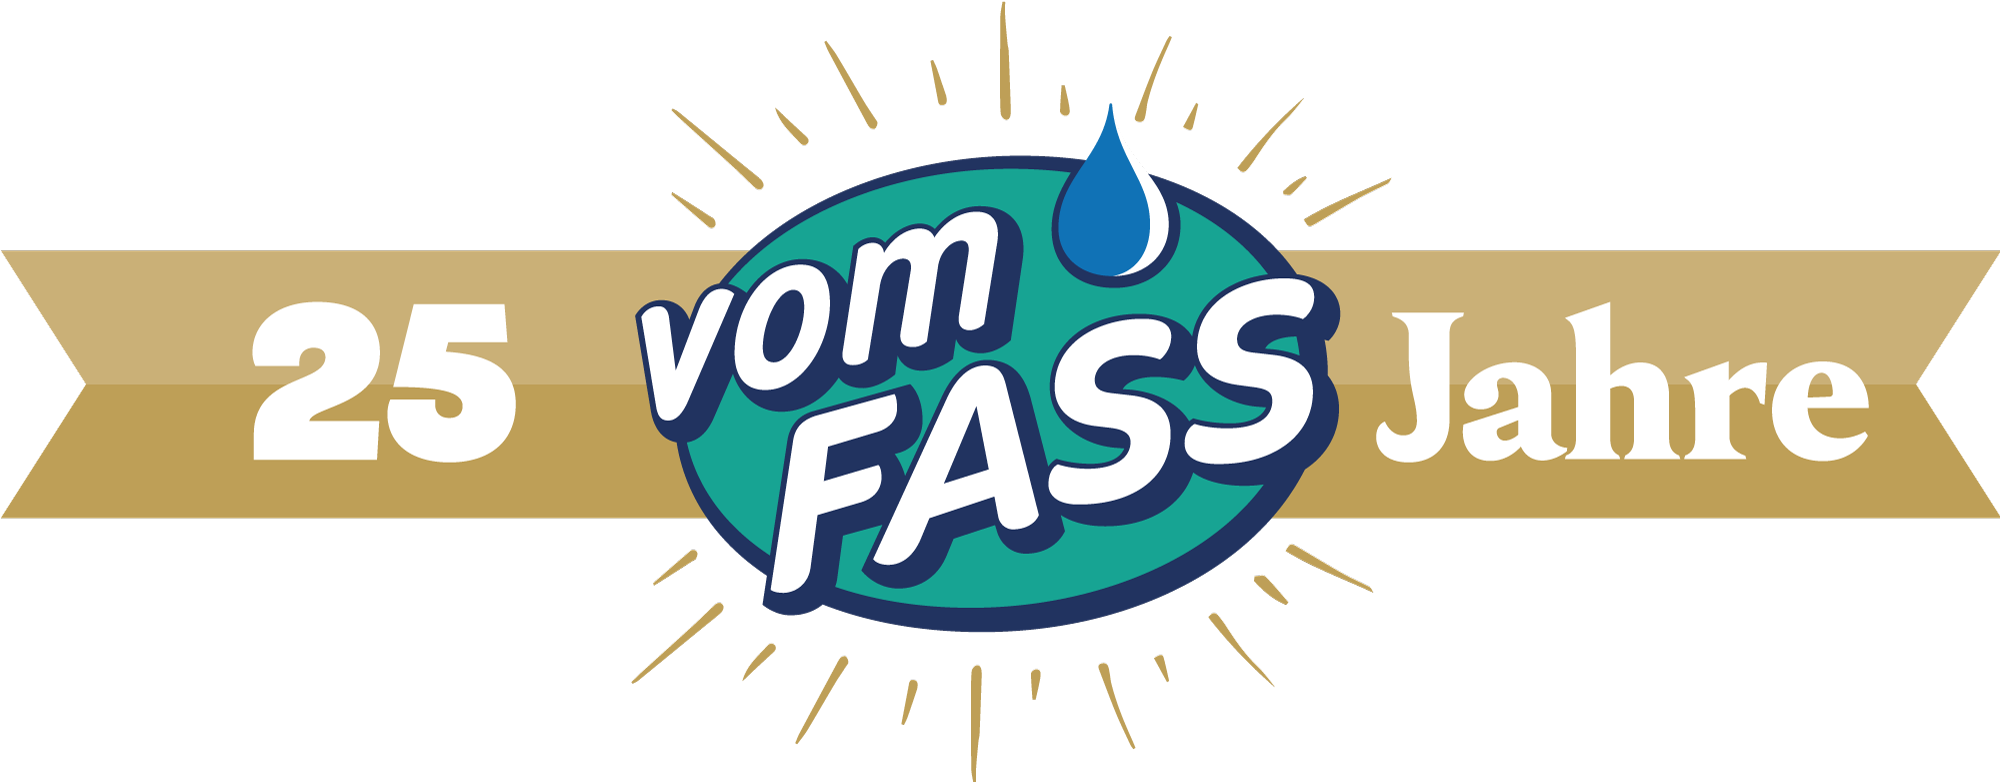 Vomfass